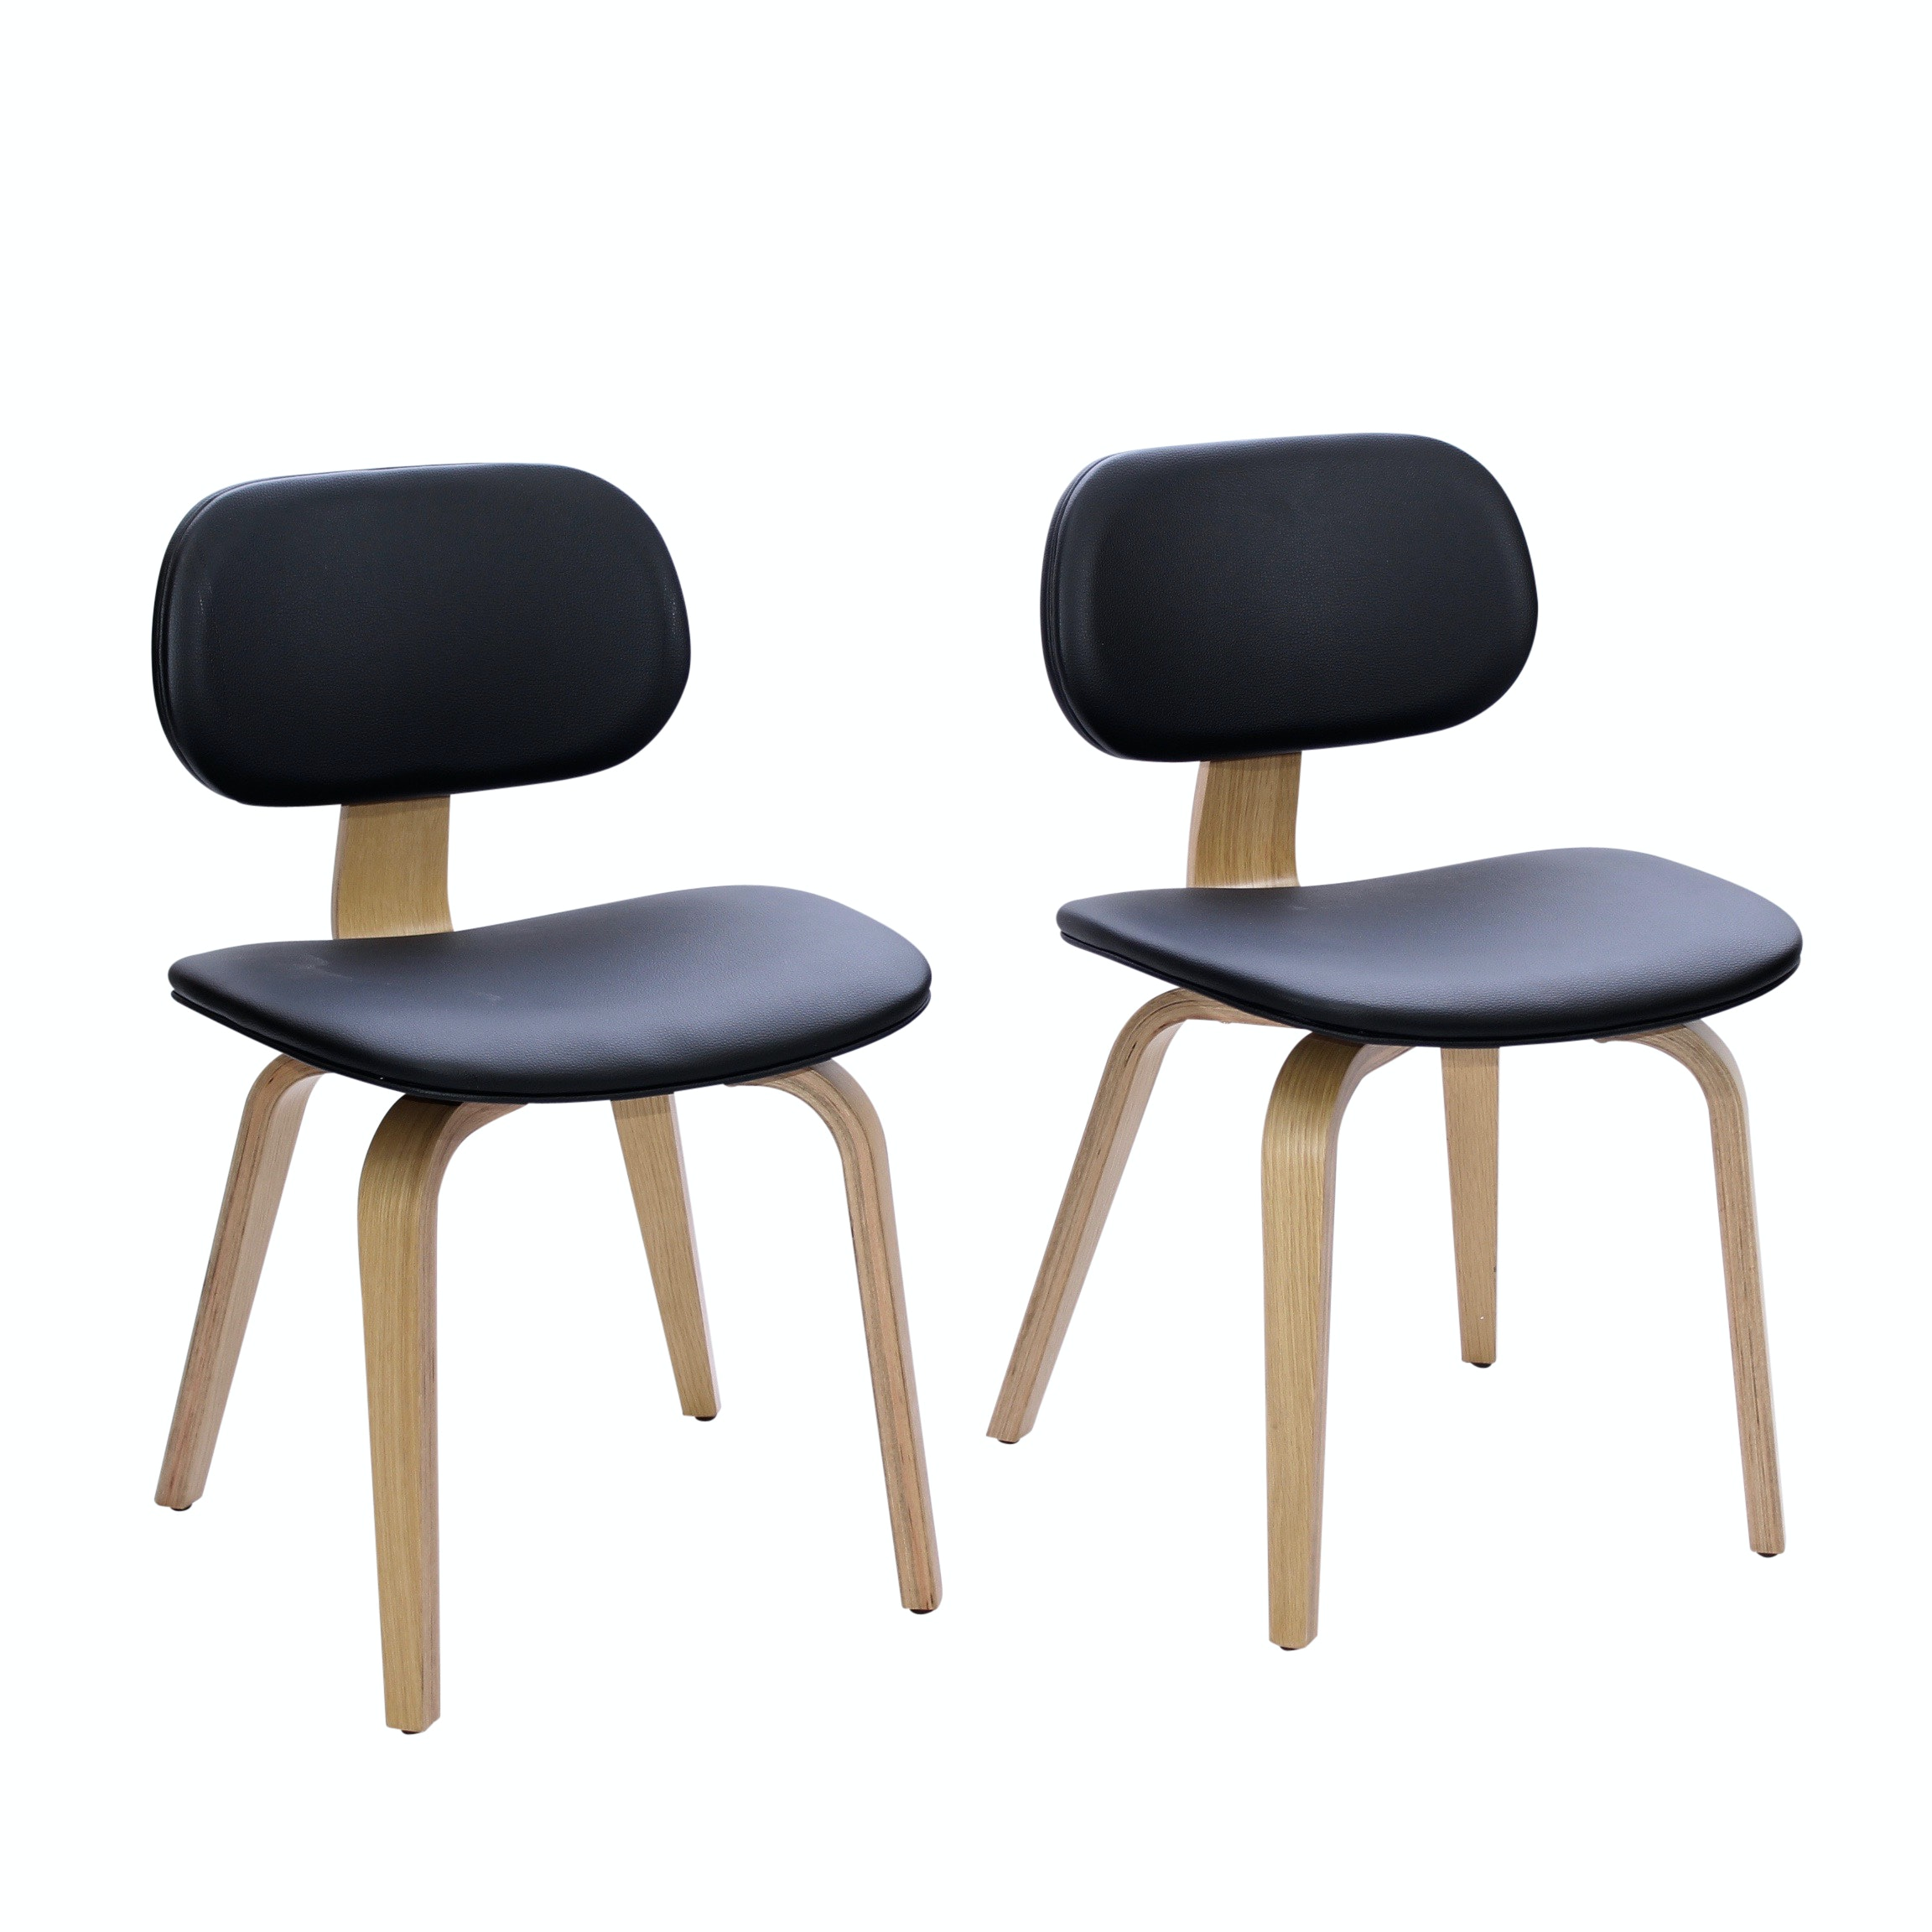 Two Gus Modern Accent Chairs, Contemporary